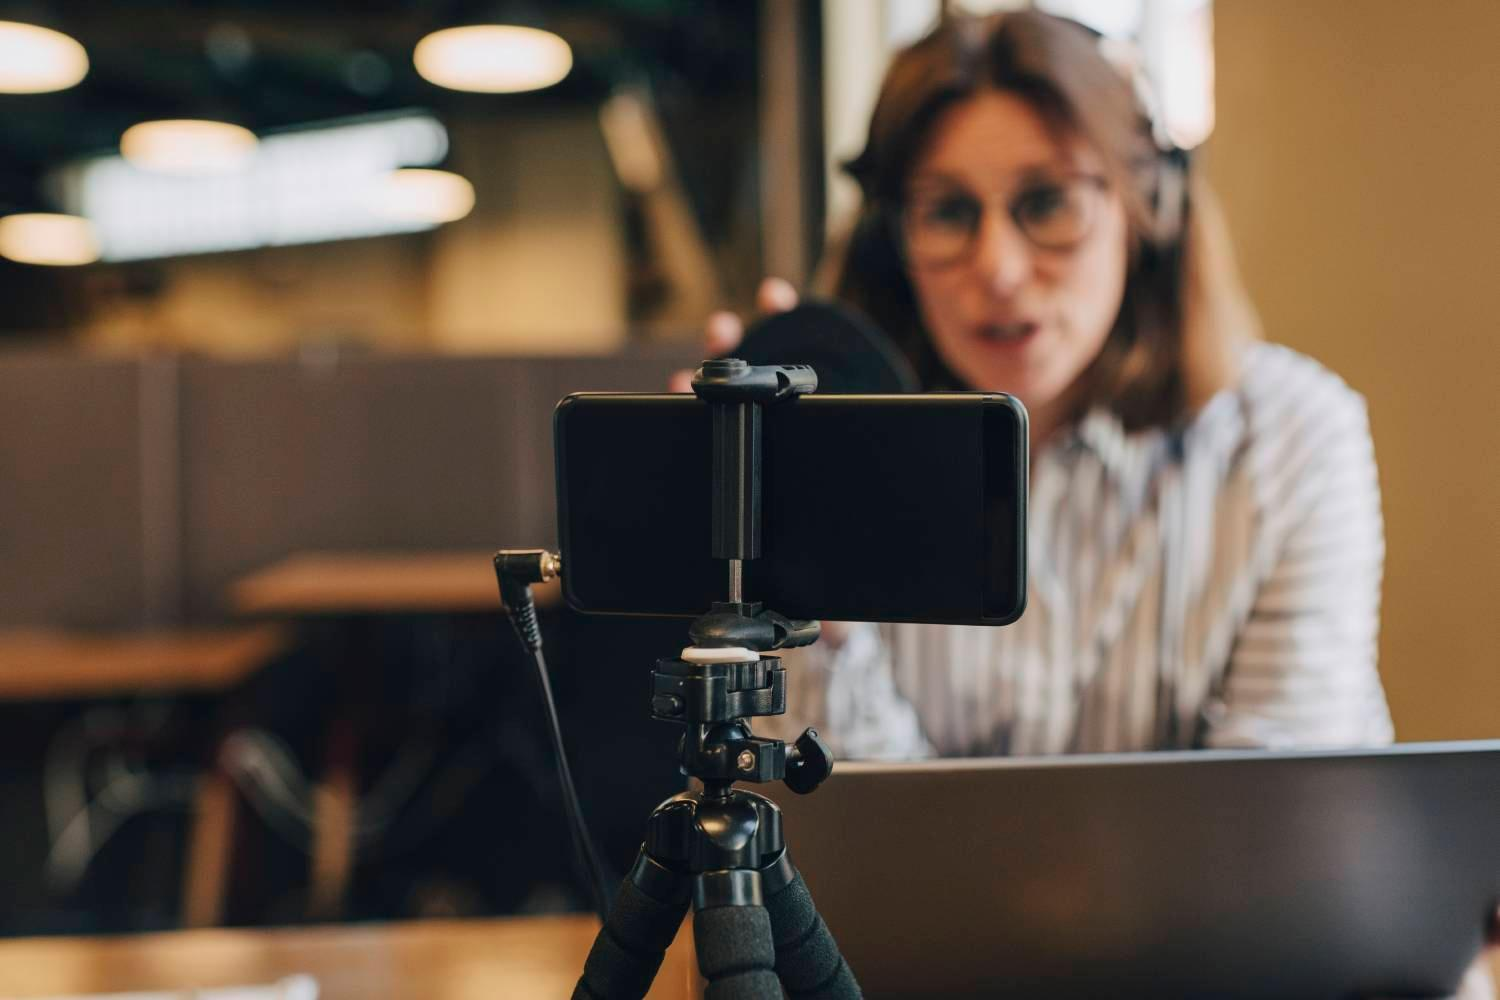 businesswoman-on-laptop-filming-on-phone